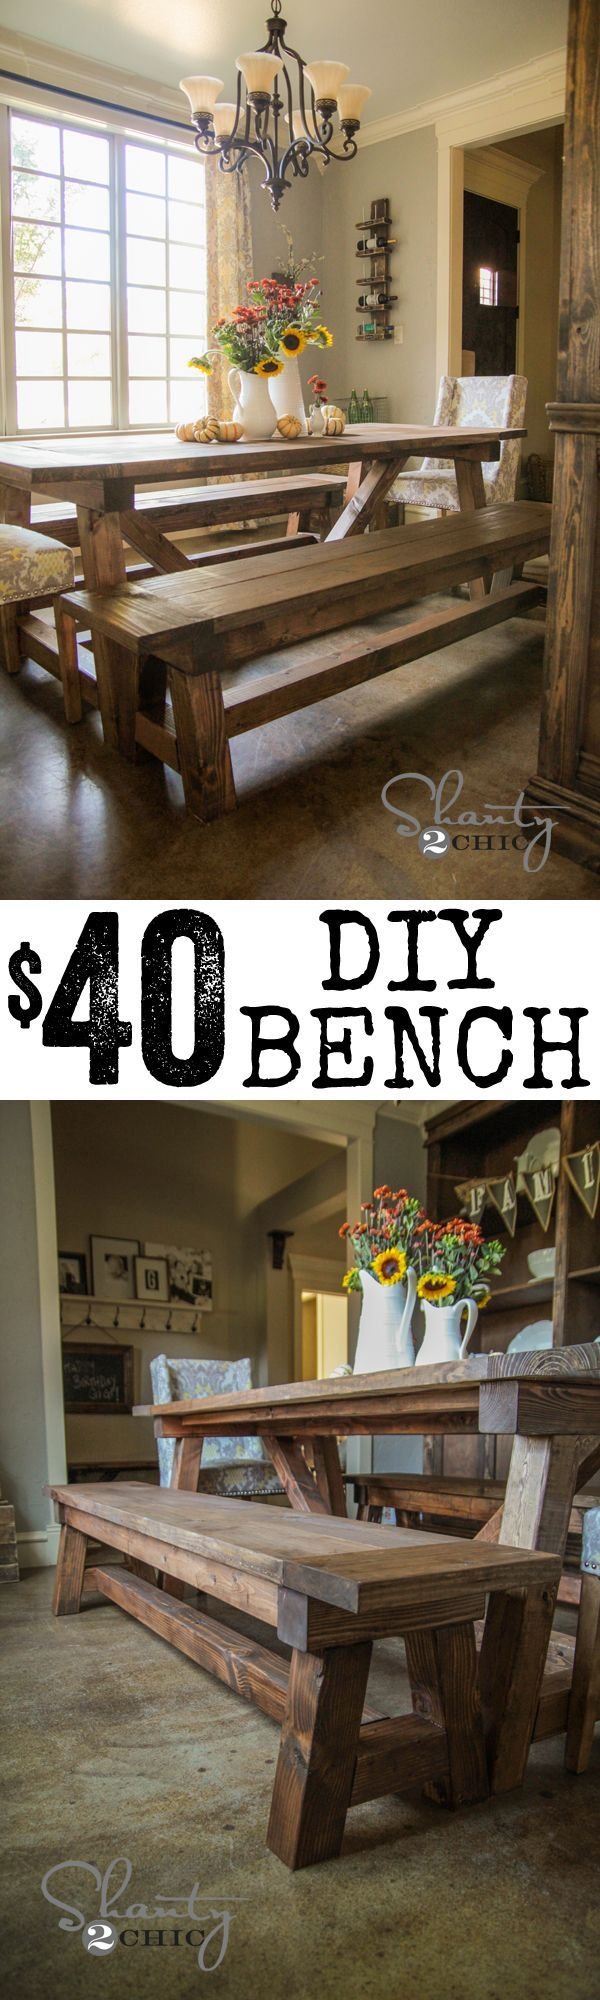 best 10 dining table bench ideas on pinterest bench for kitchen diy 40 bench for the dining table